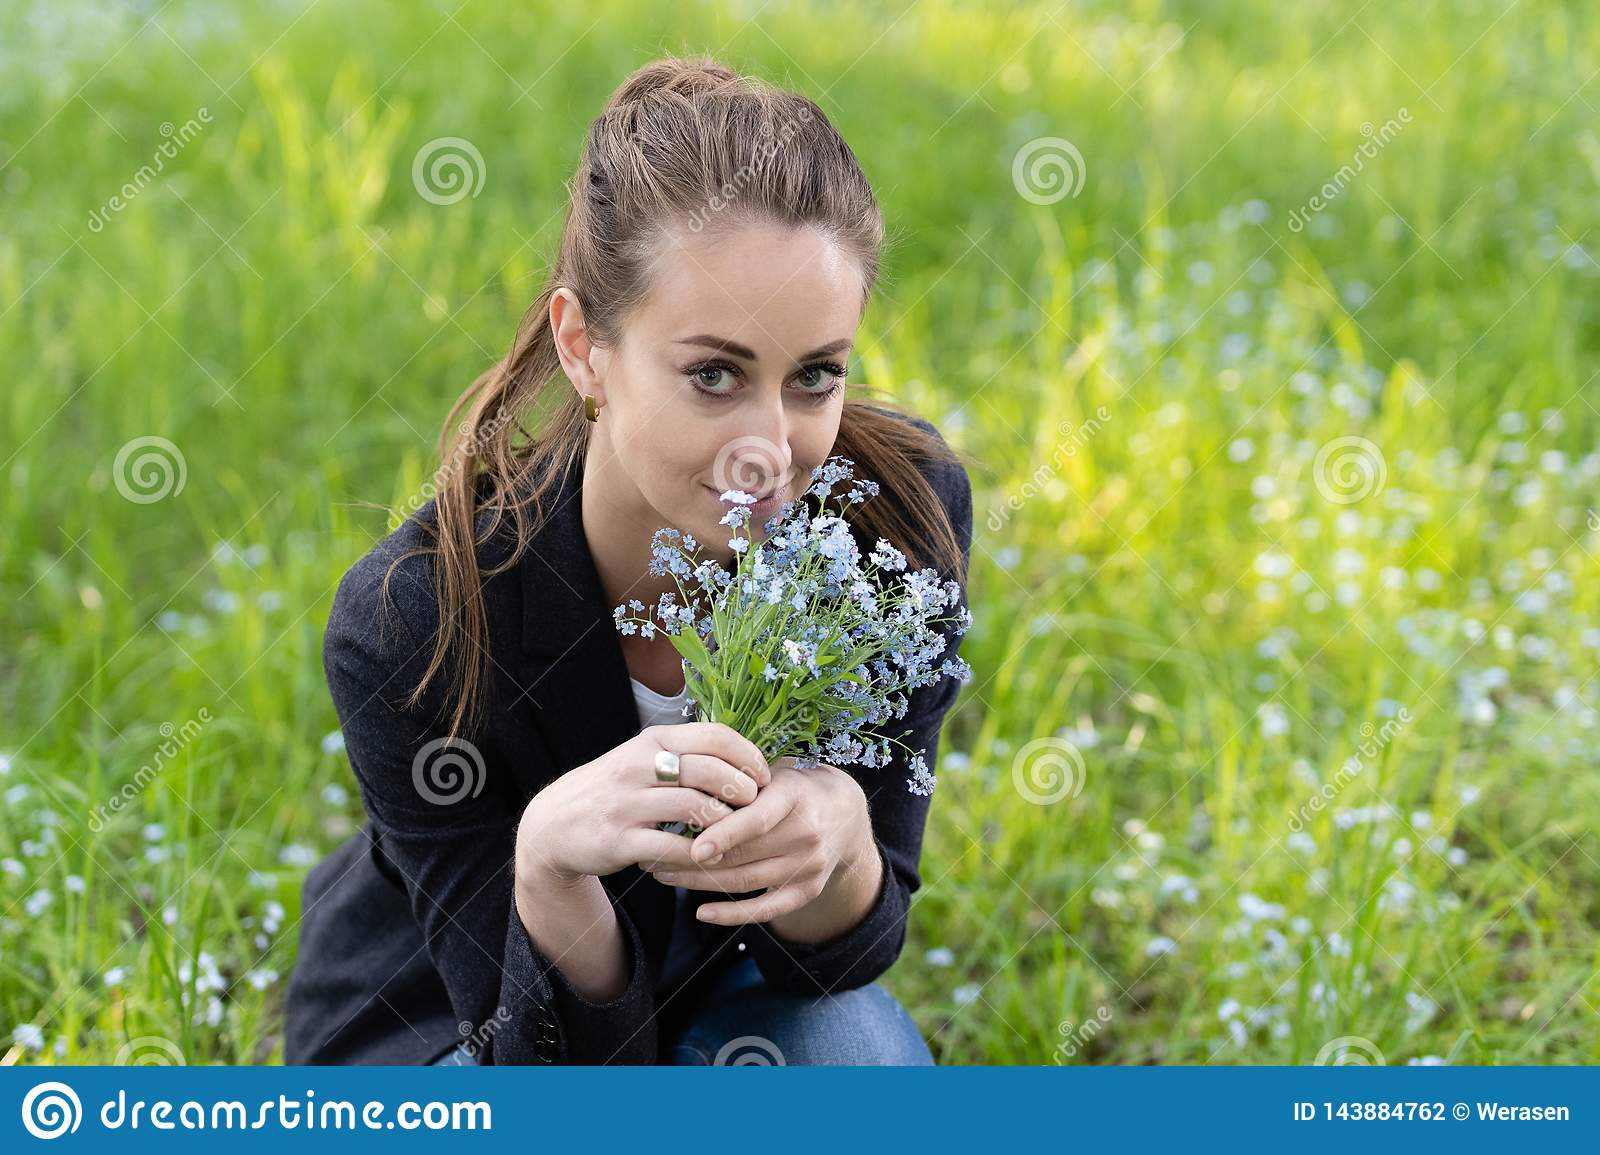 Young attractive woman brought a bouquet of forget-me-nots to her face